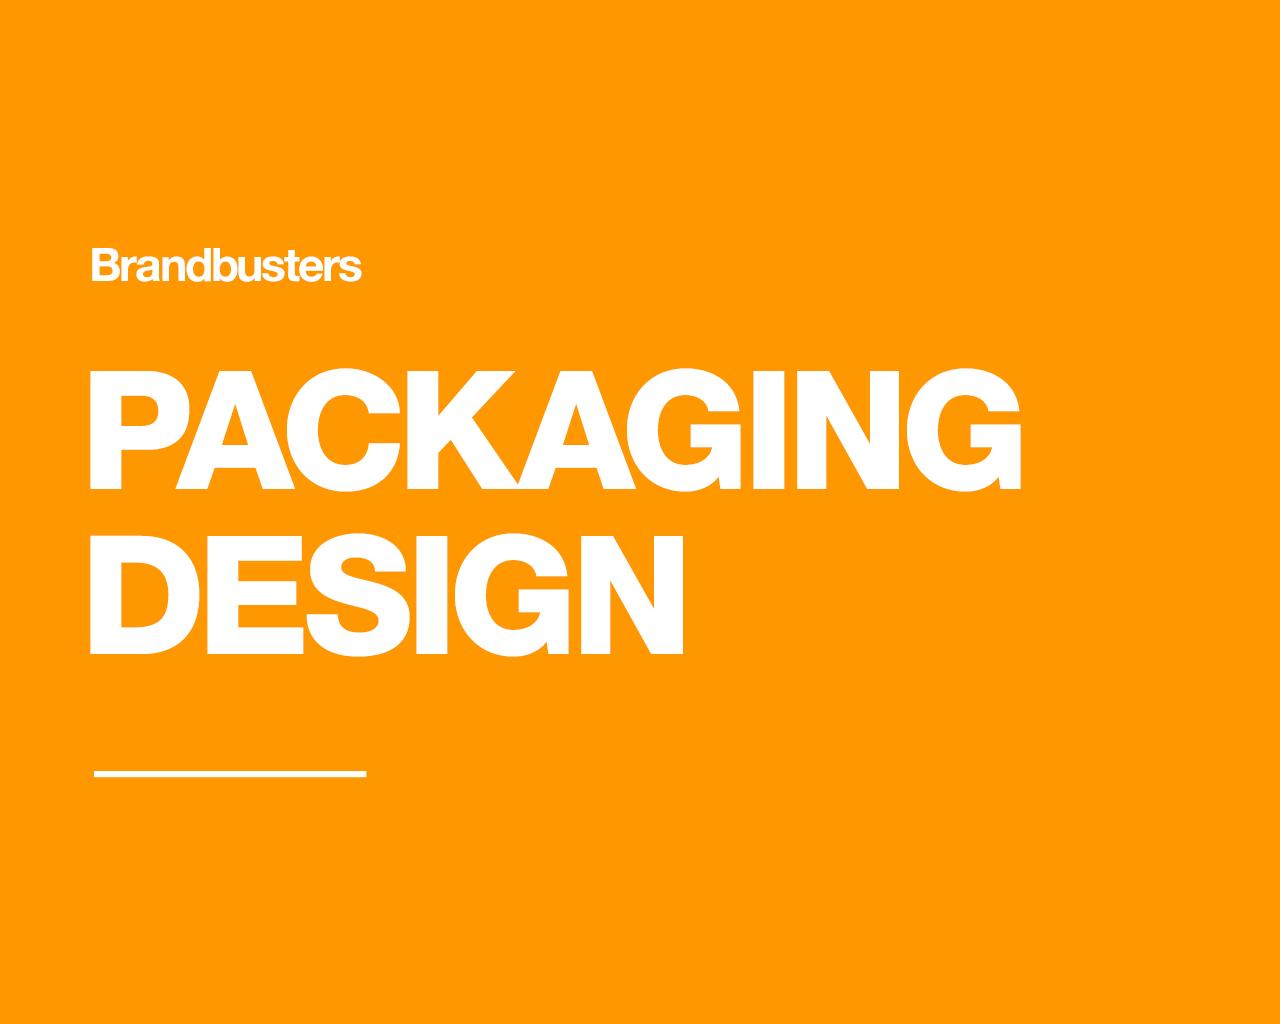 Professional Packaging Design by Brandbusters - 110656